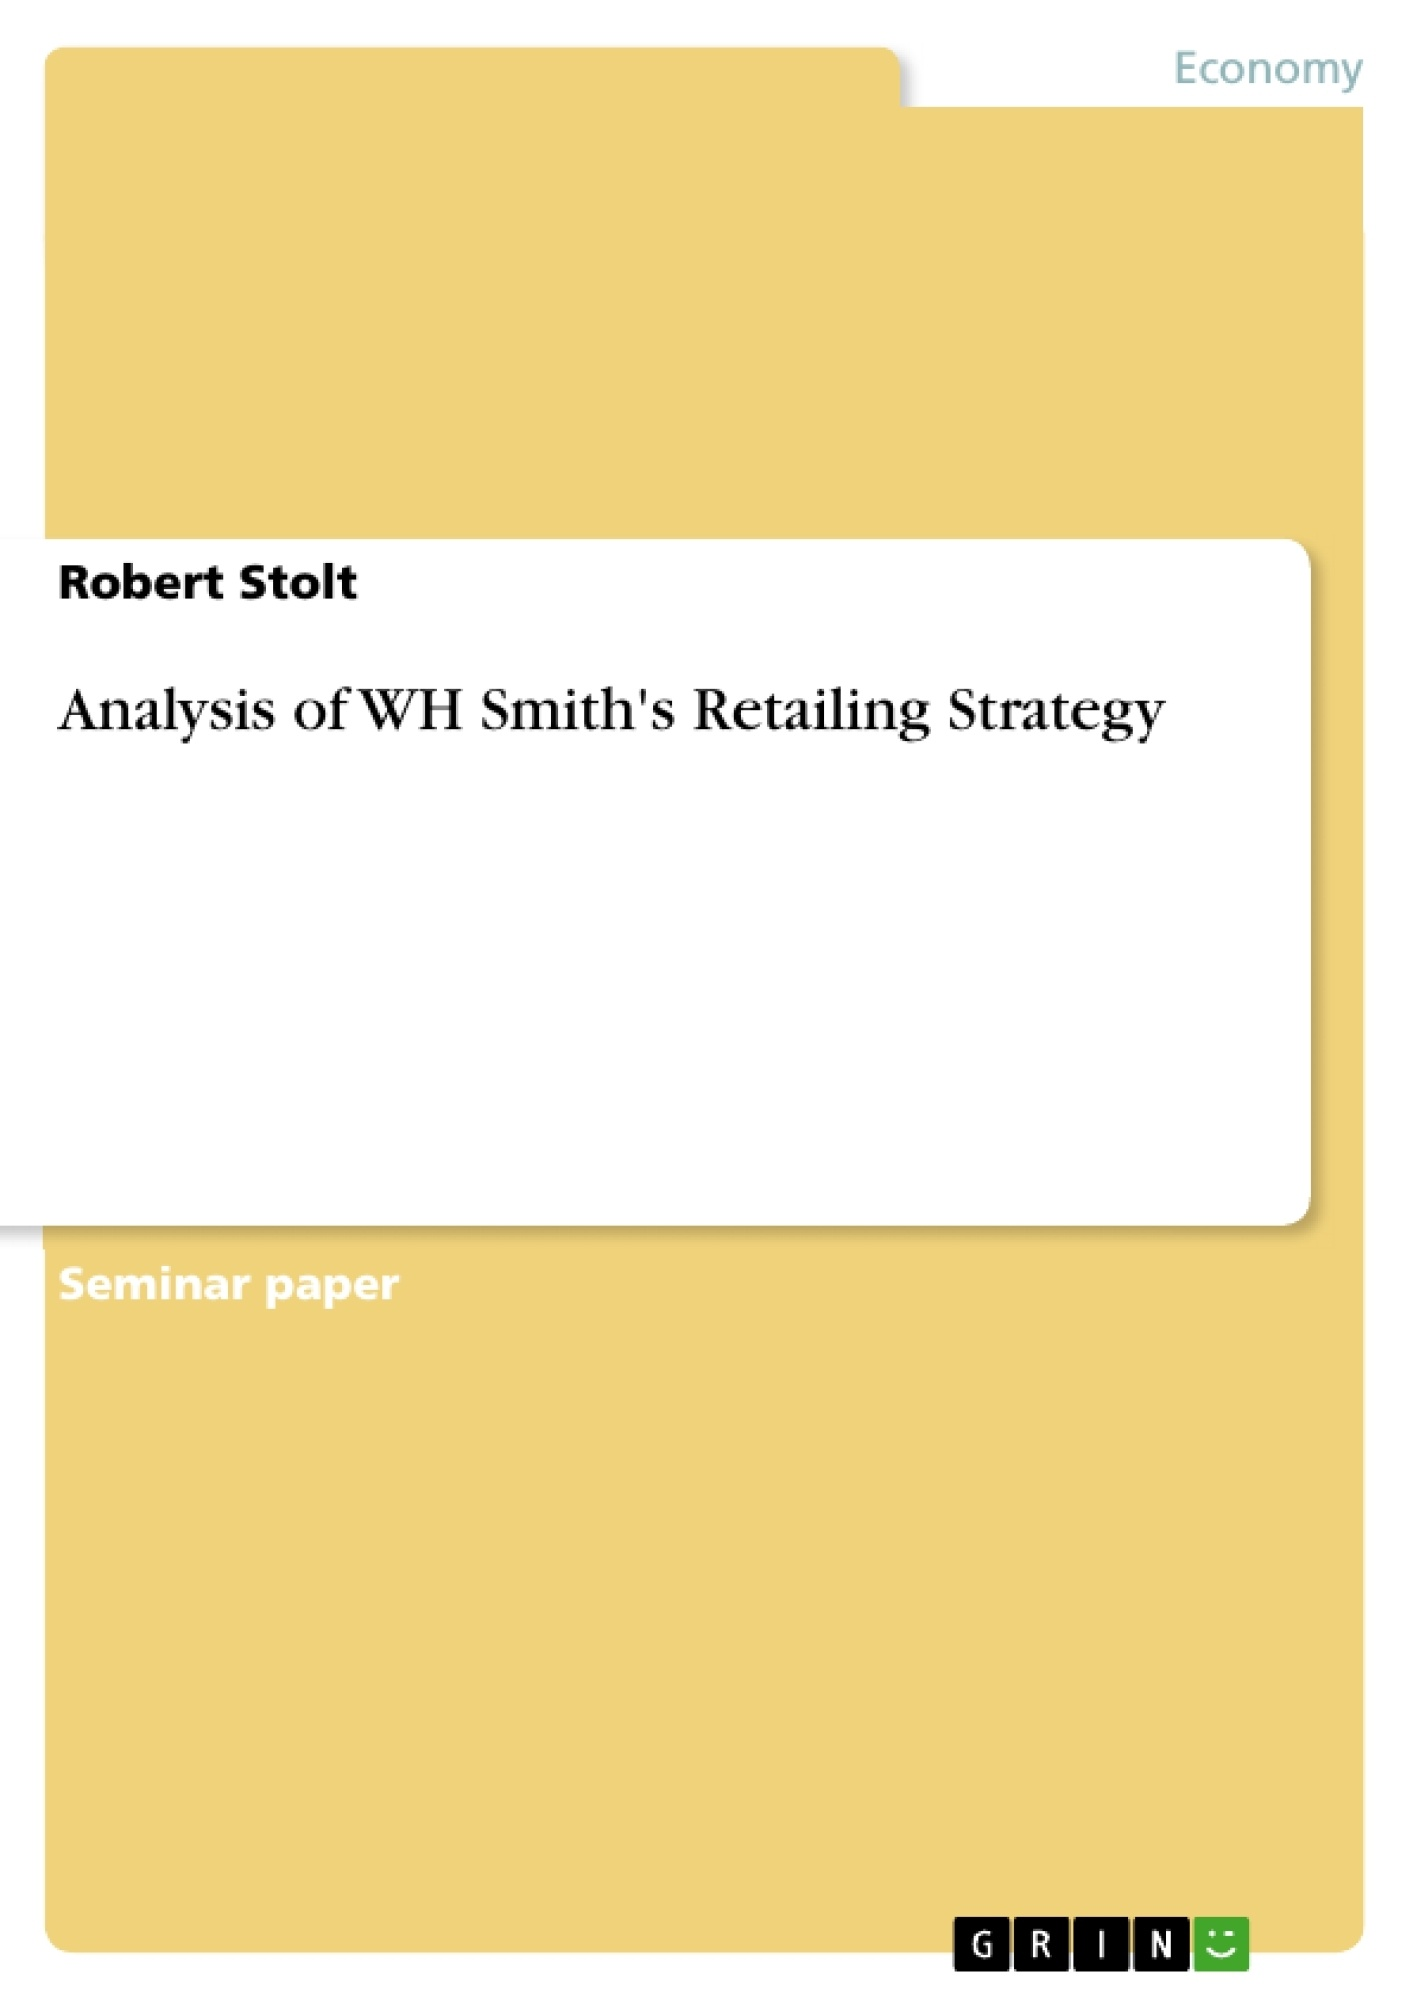 Title: Analysis of WH Smith's Retailing Strategy